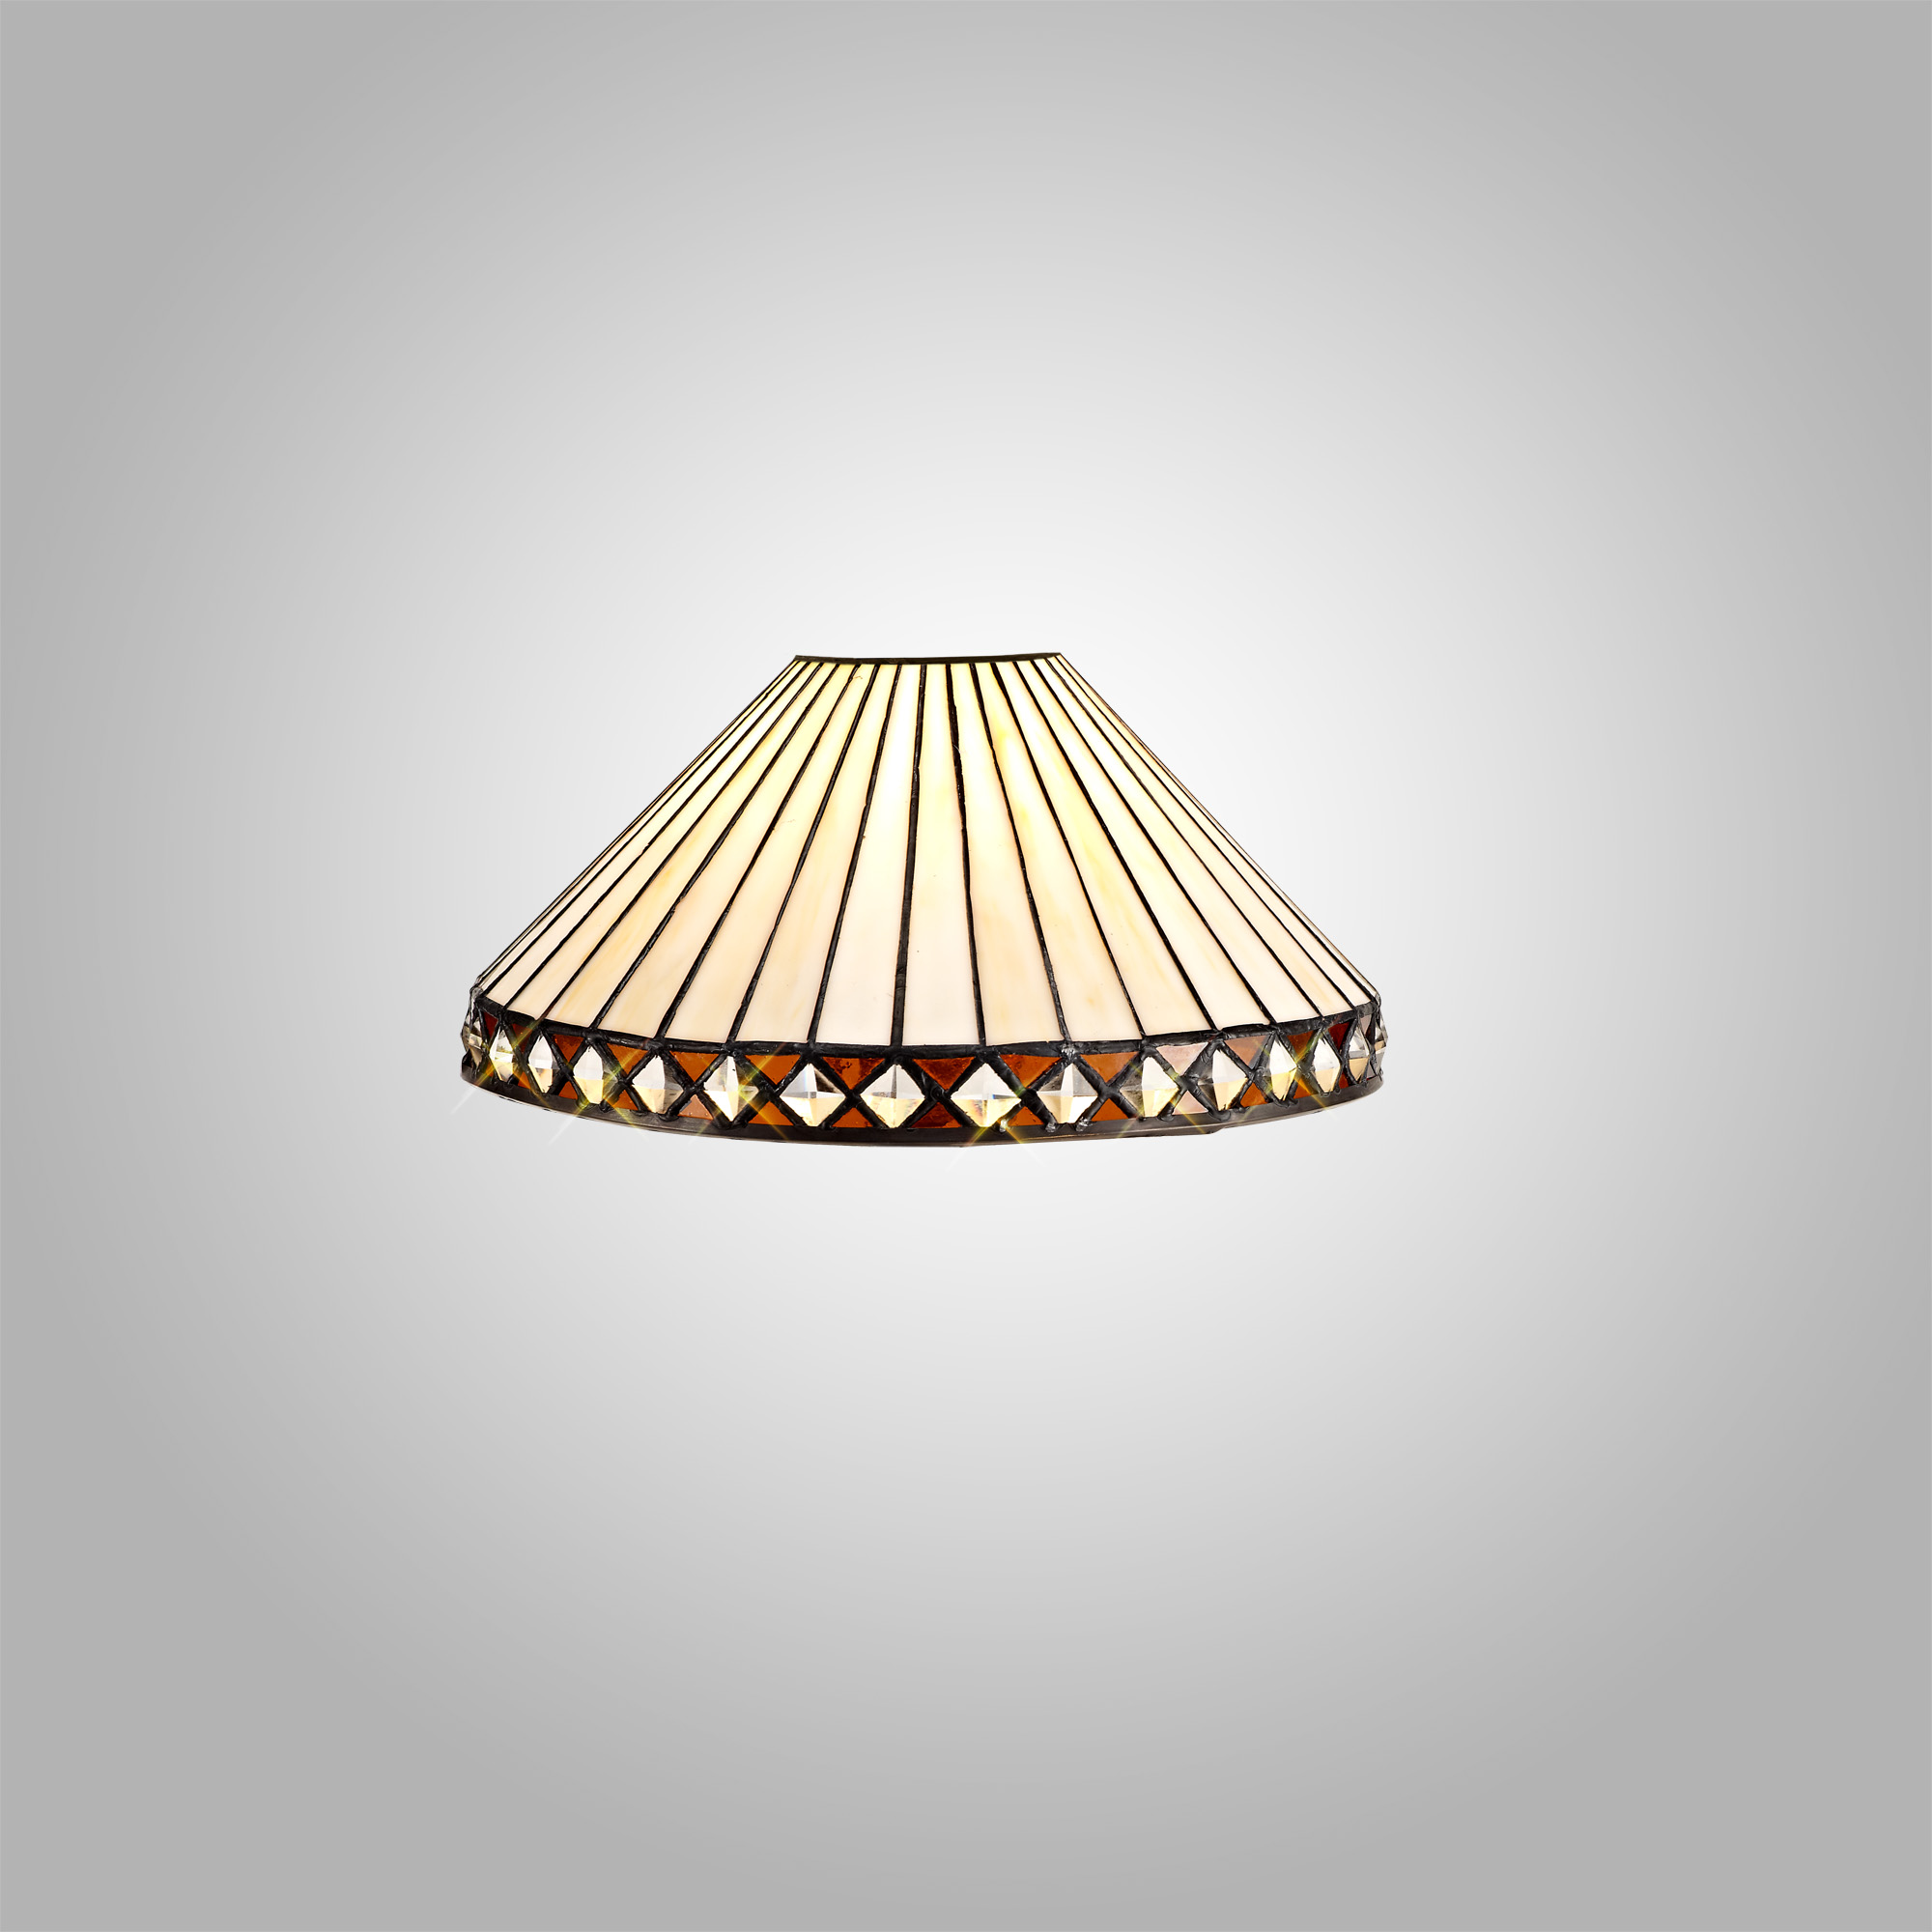 Tiffany 30cm Non-electric Shade Suitable For Pendant/Ceiling/Table Lamp, Amber/C/Crystal